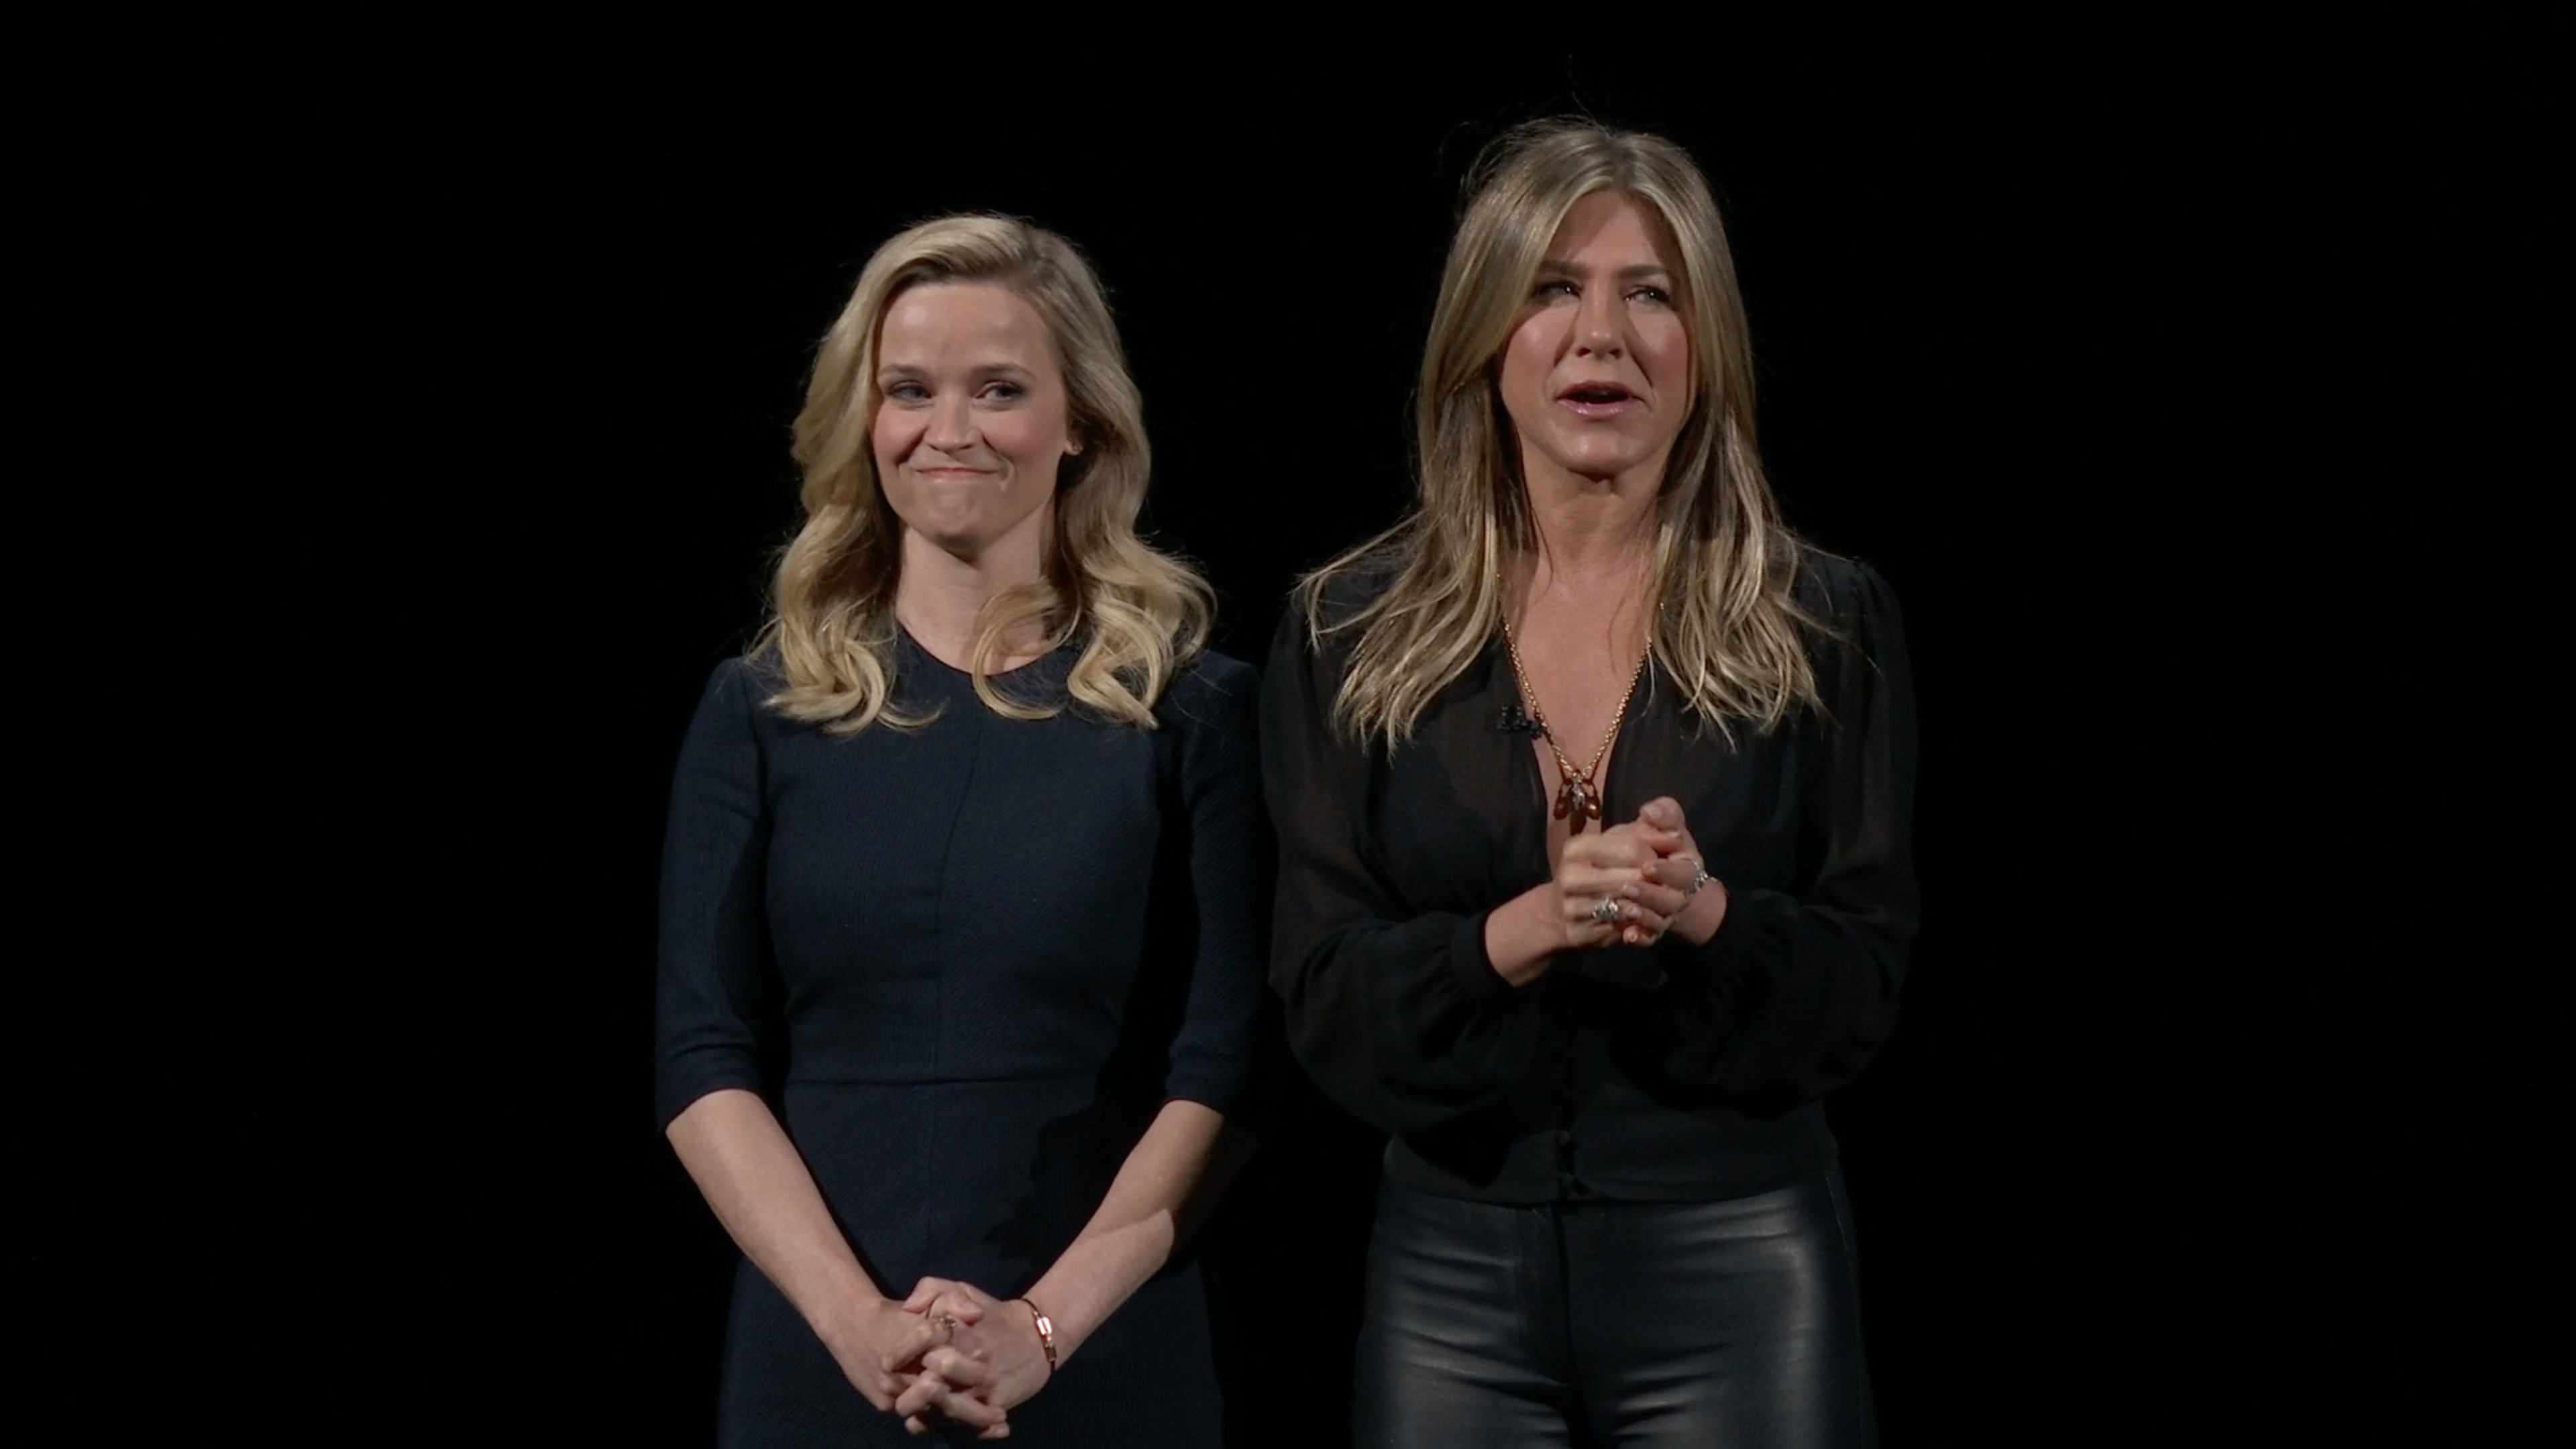 Actresses Reese Witherspoon, Jennifer Aniston